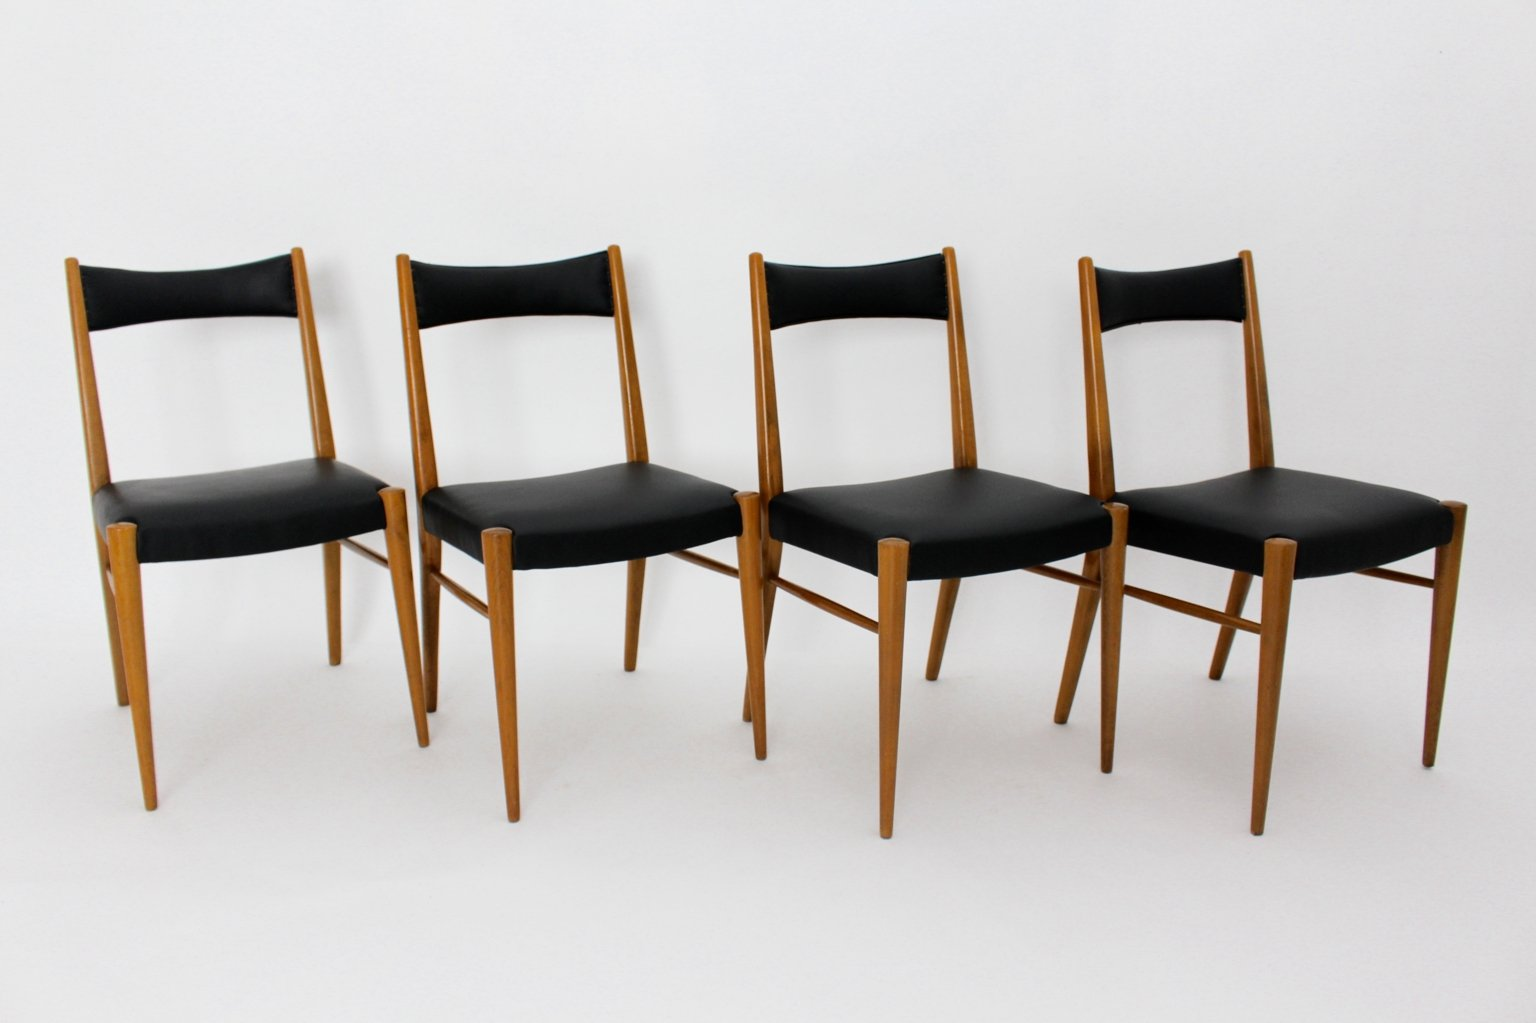 Viennese Dining Room Chairs by Anna-Lülja Praun for Wiesner Hager ...